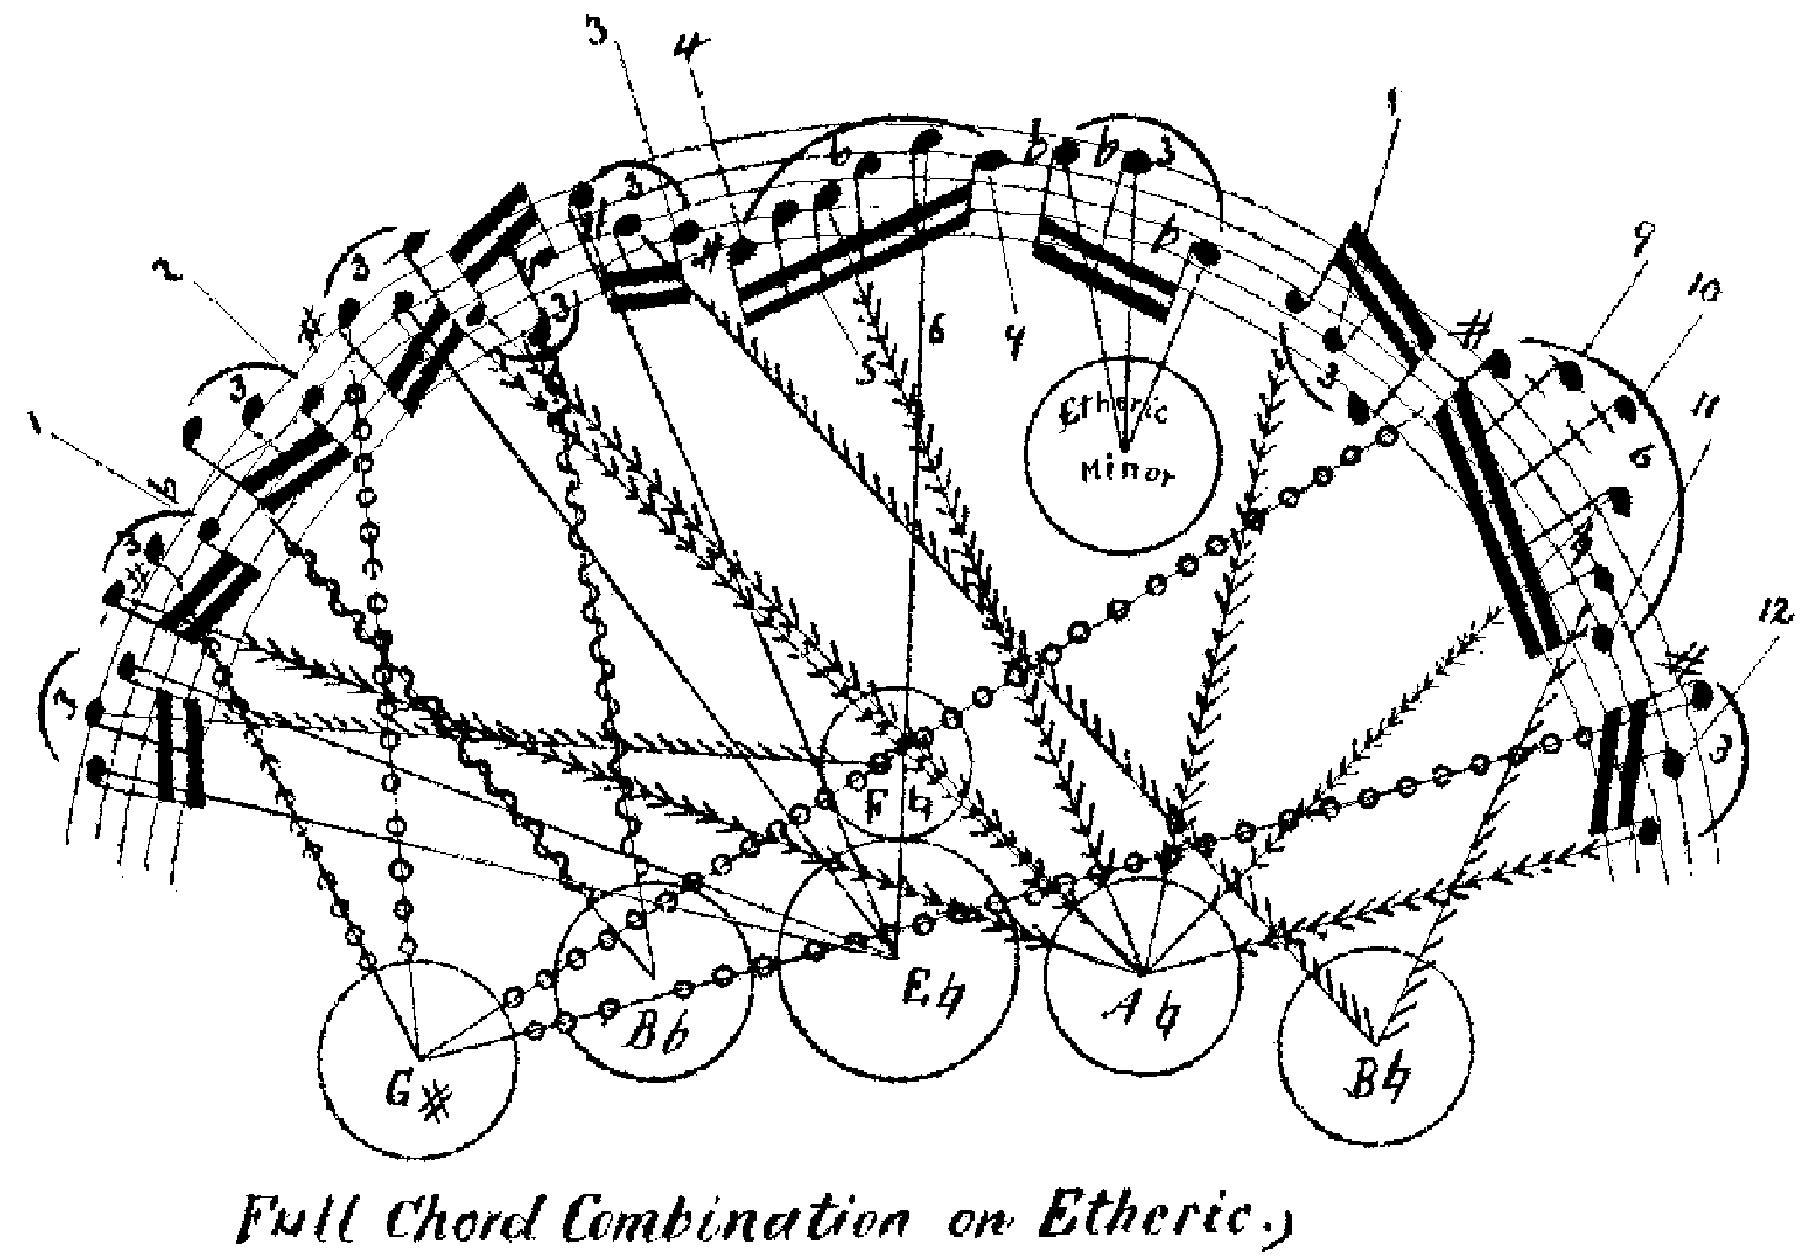 Figure 14.03 - A section from one of Keely's charts showing his generous use of Triplets (three notes sounded simultaneously).